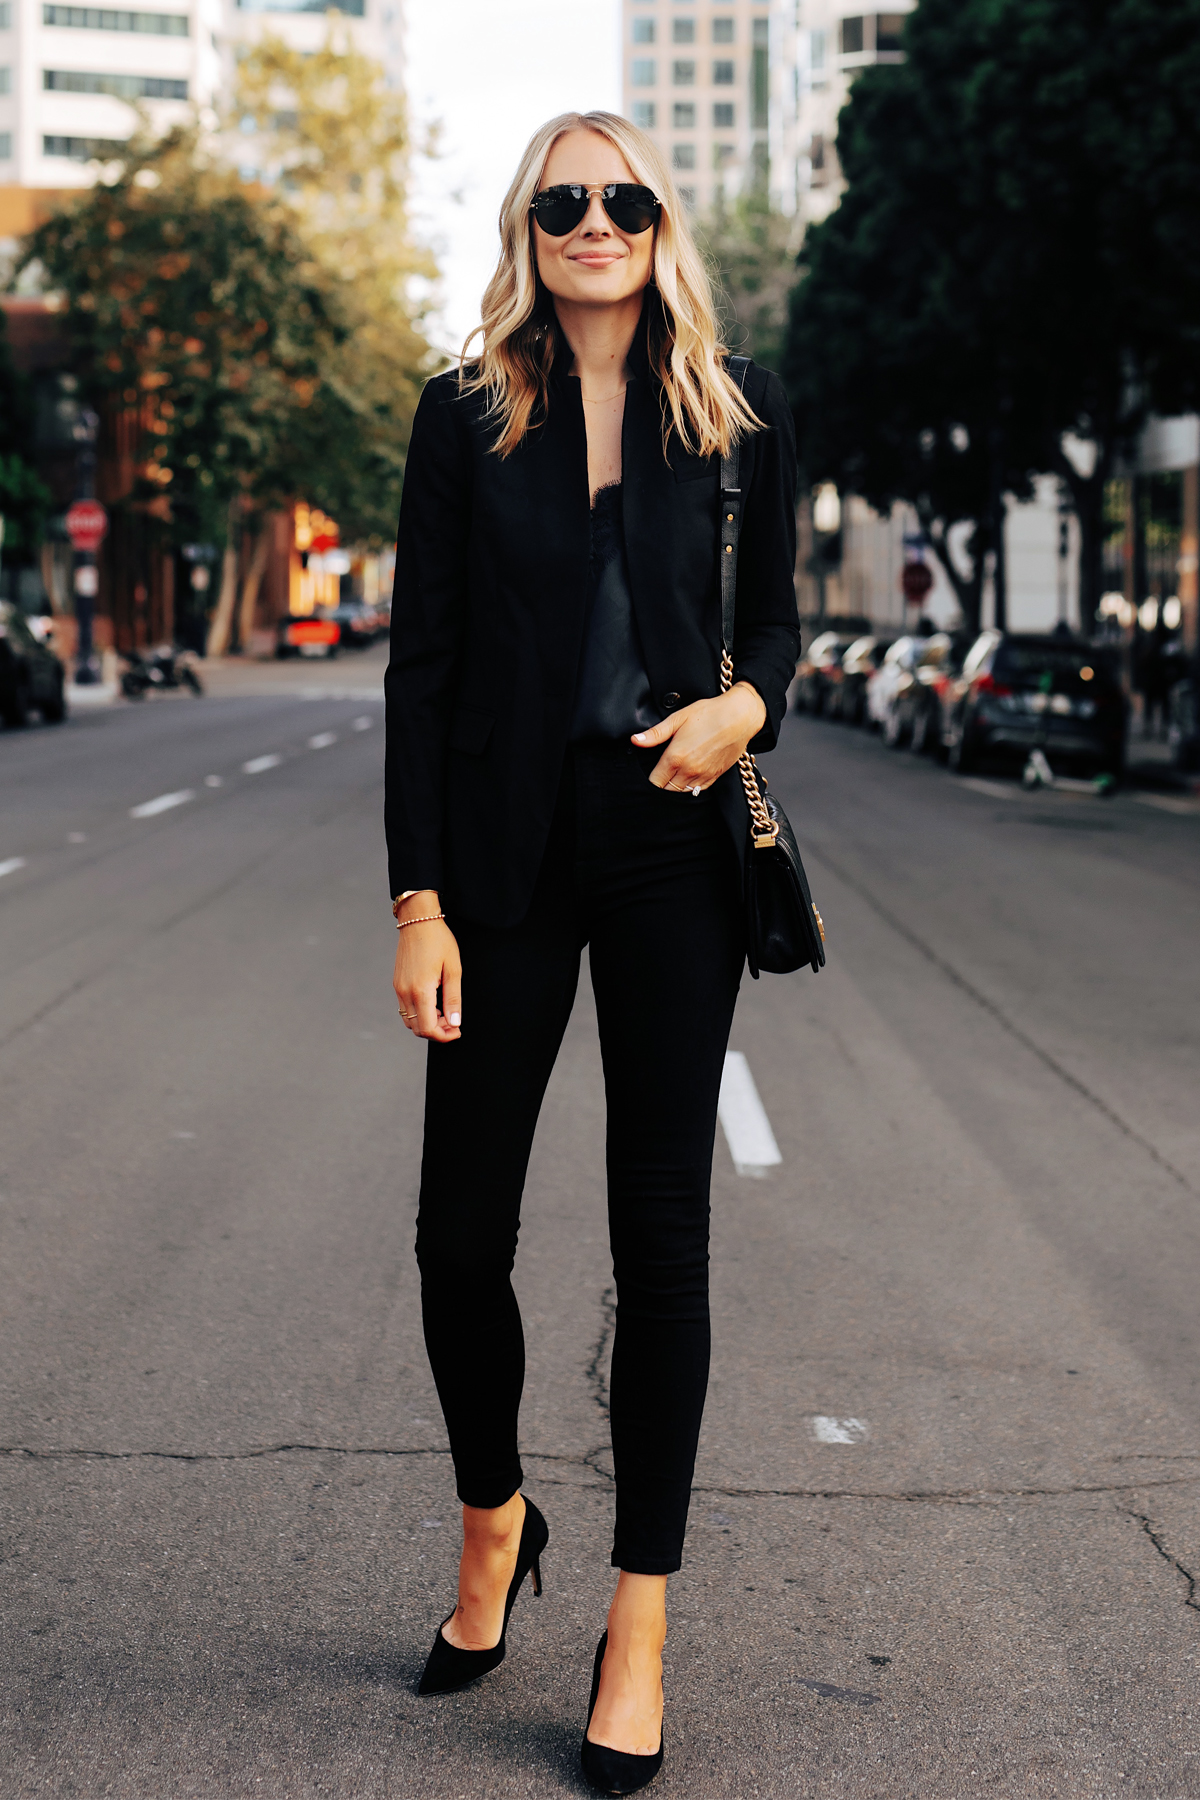 Fashion Jackson Wearing Jcrew Black Blazer Black Lace Cami Black Skinny Jeans Black Pumps